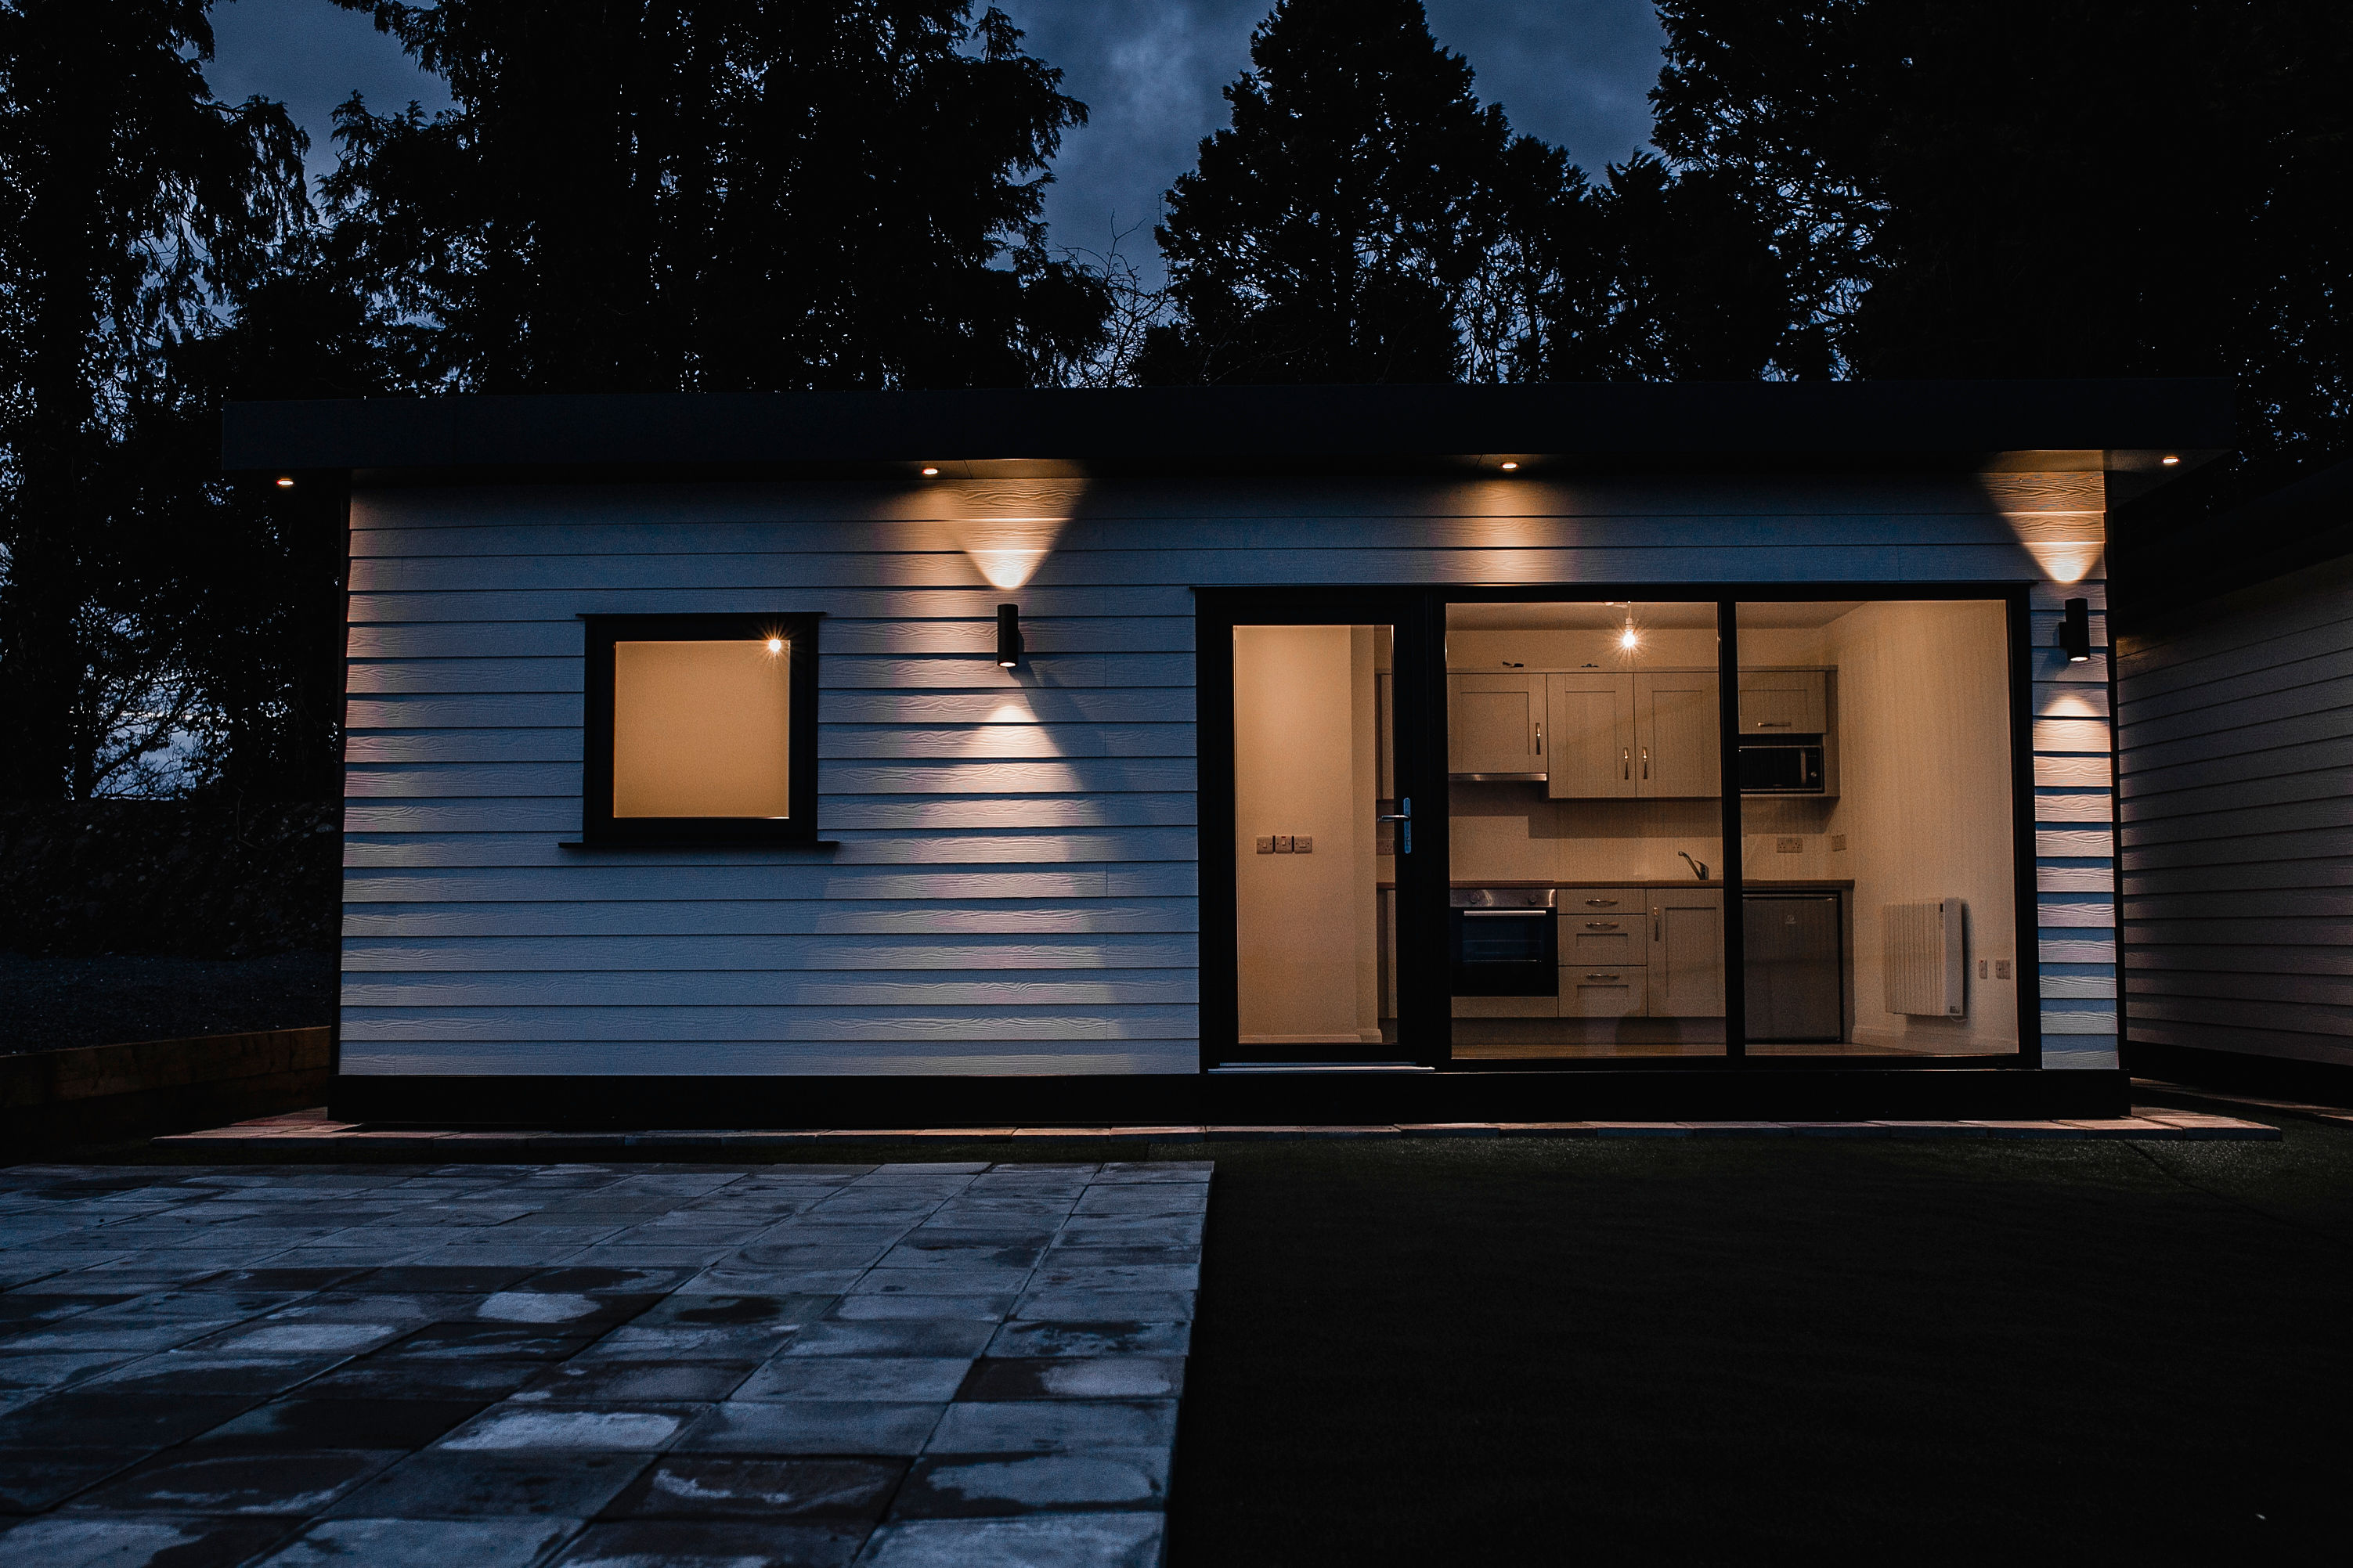 Night Time view of one bedroom modular unit